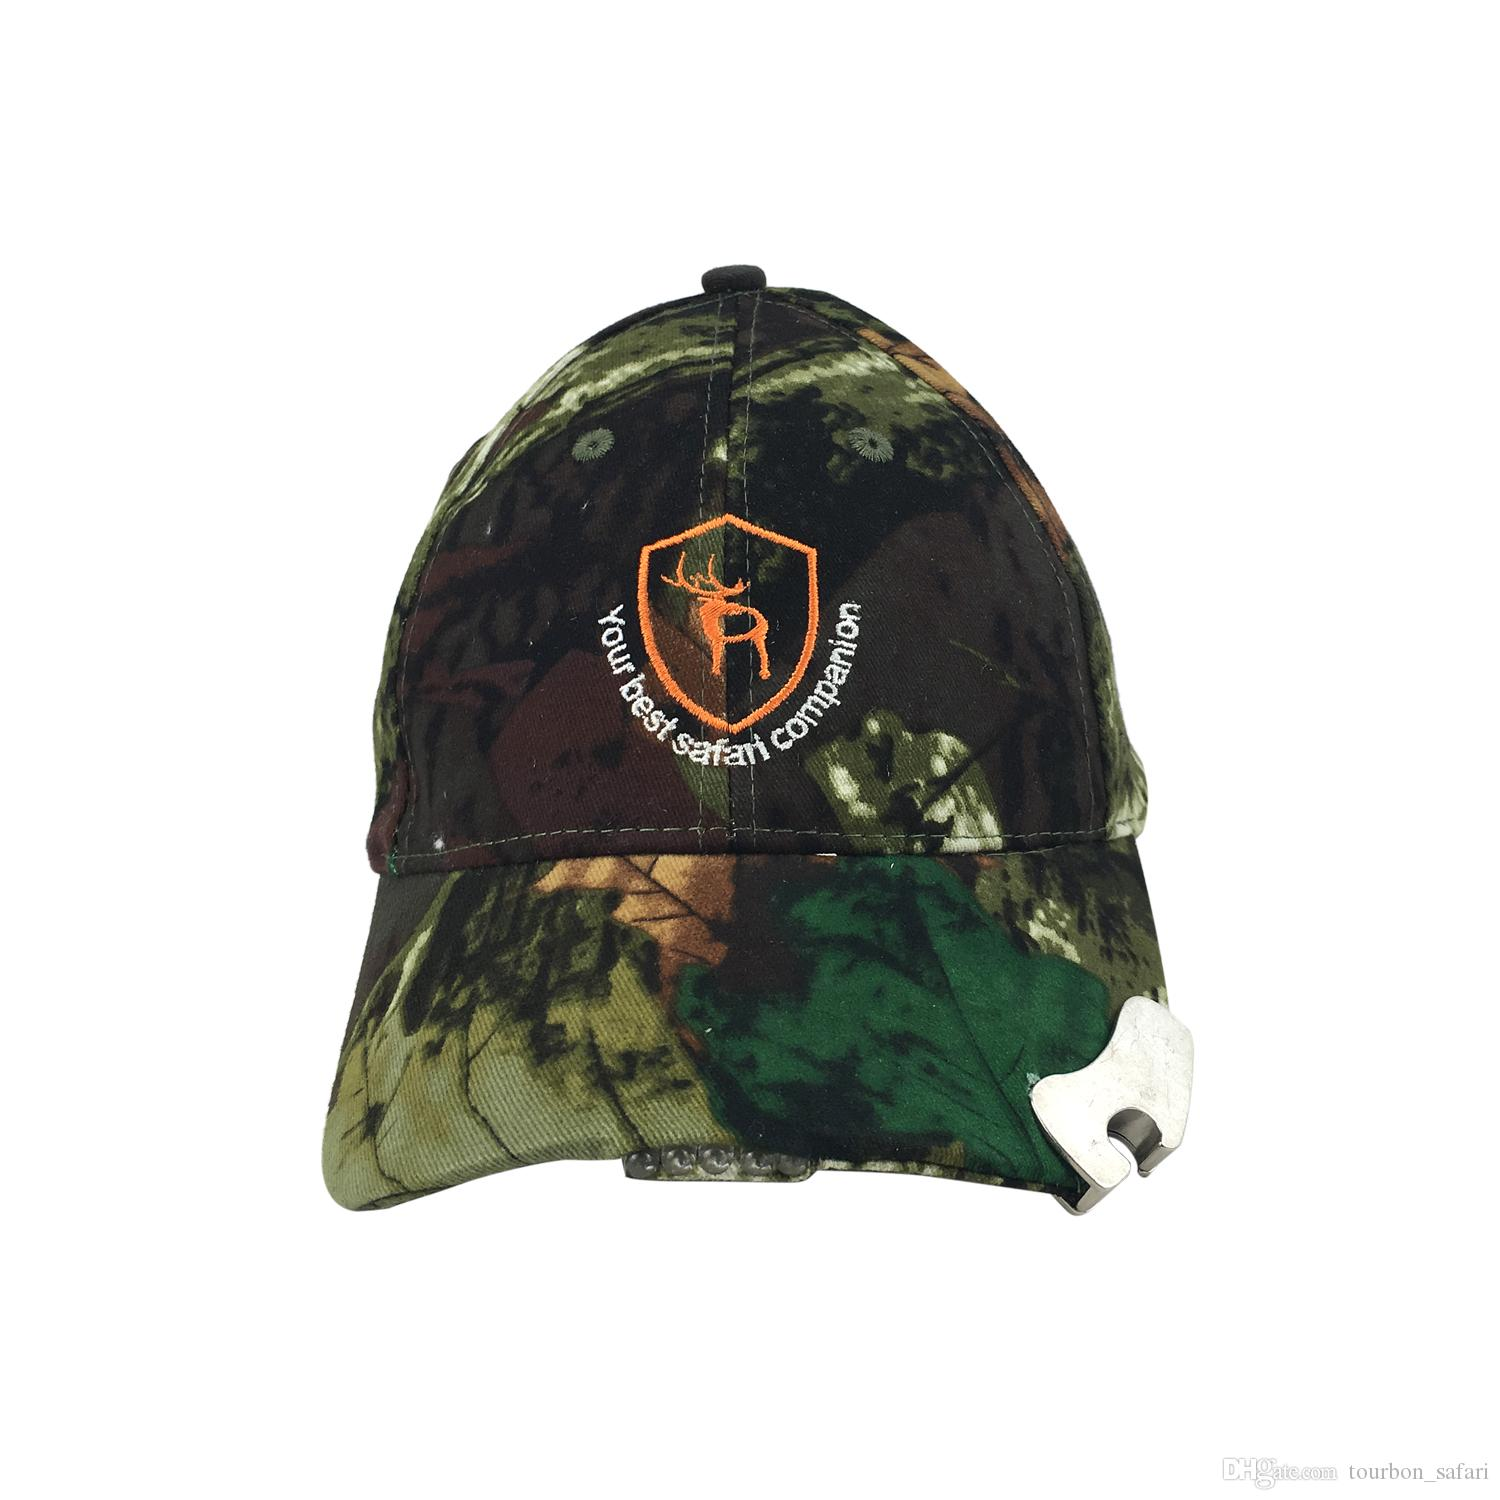 Tourbon Top Quality Tactical Camo Hunting Fishing Hat with 5 LED ... d746451a1cc